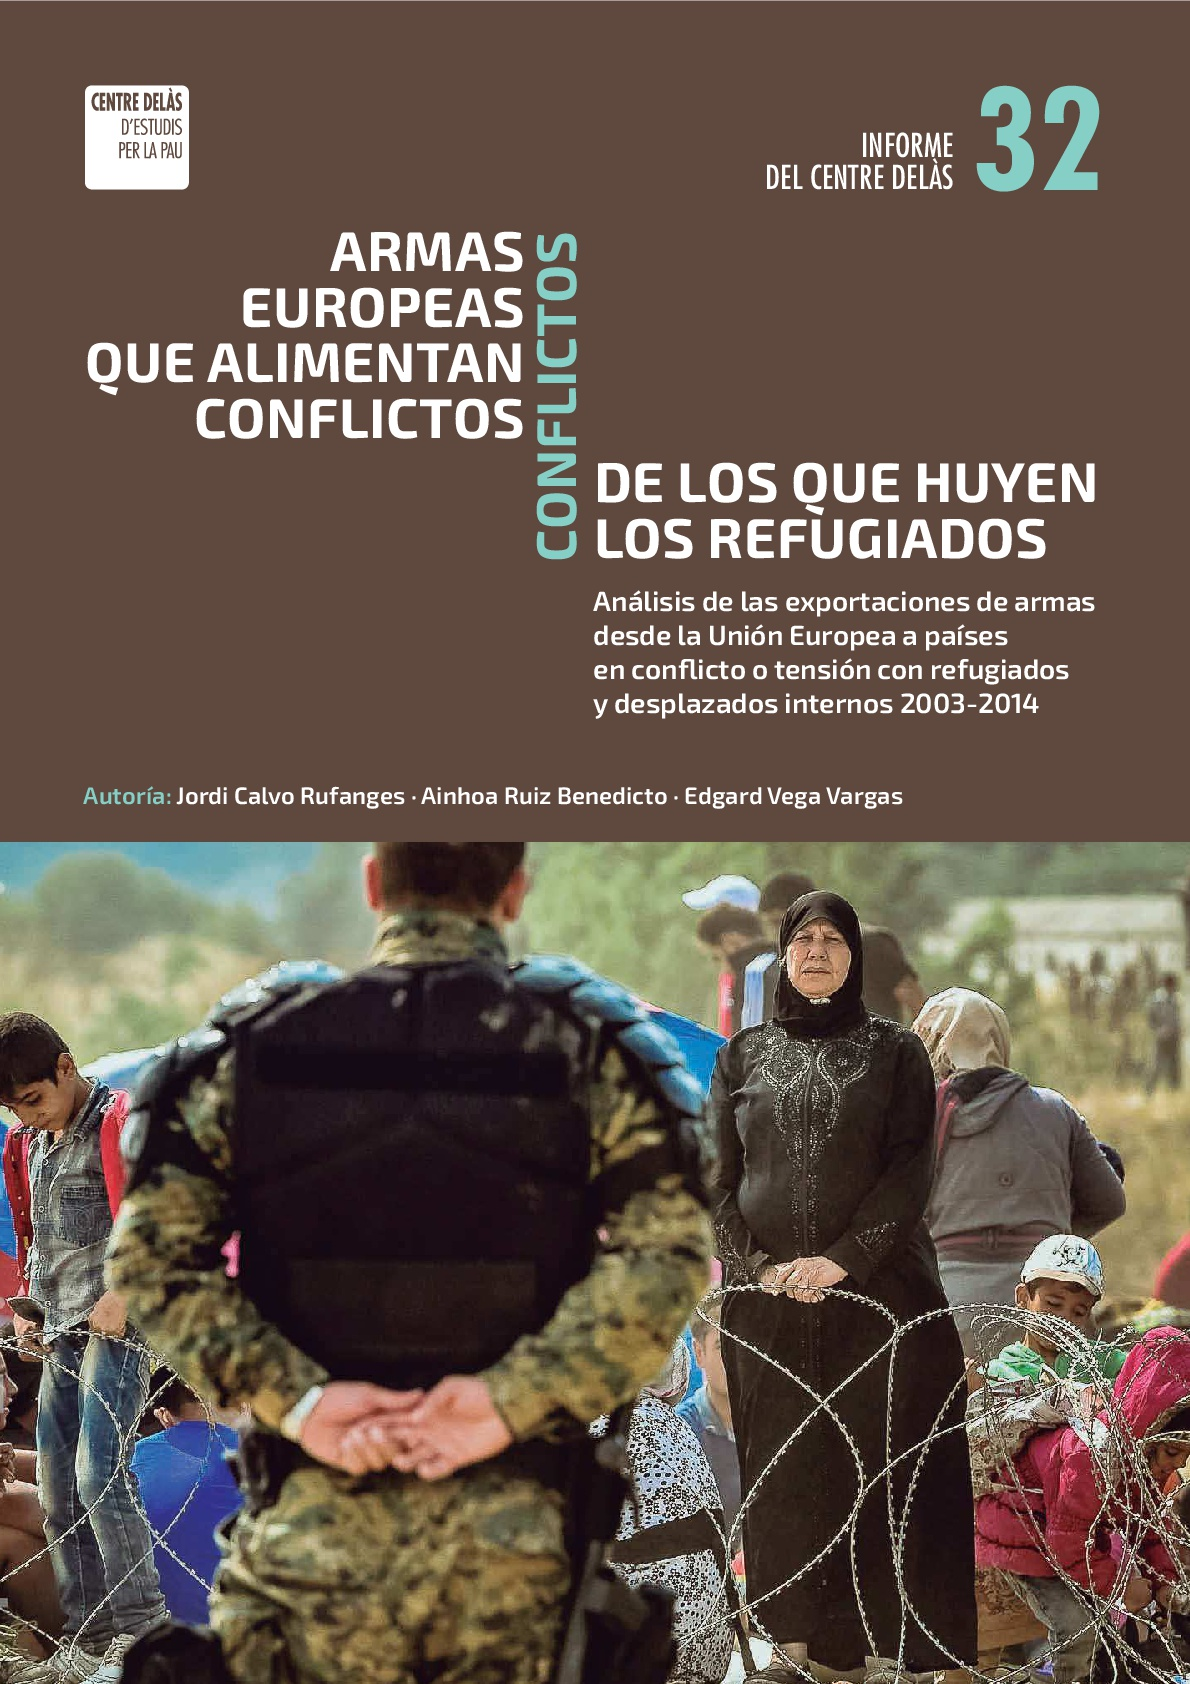 Report 32: European arms that foster armed conflicts. Conflicts that cause refugees to flee. An analysis of arms exports from the European Union to countries with refugees or internally displaced persons 2003-14